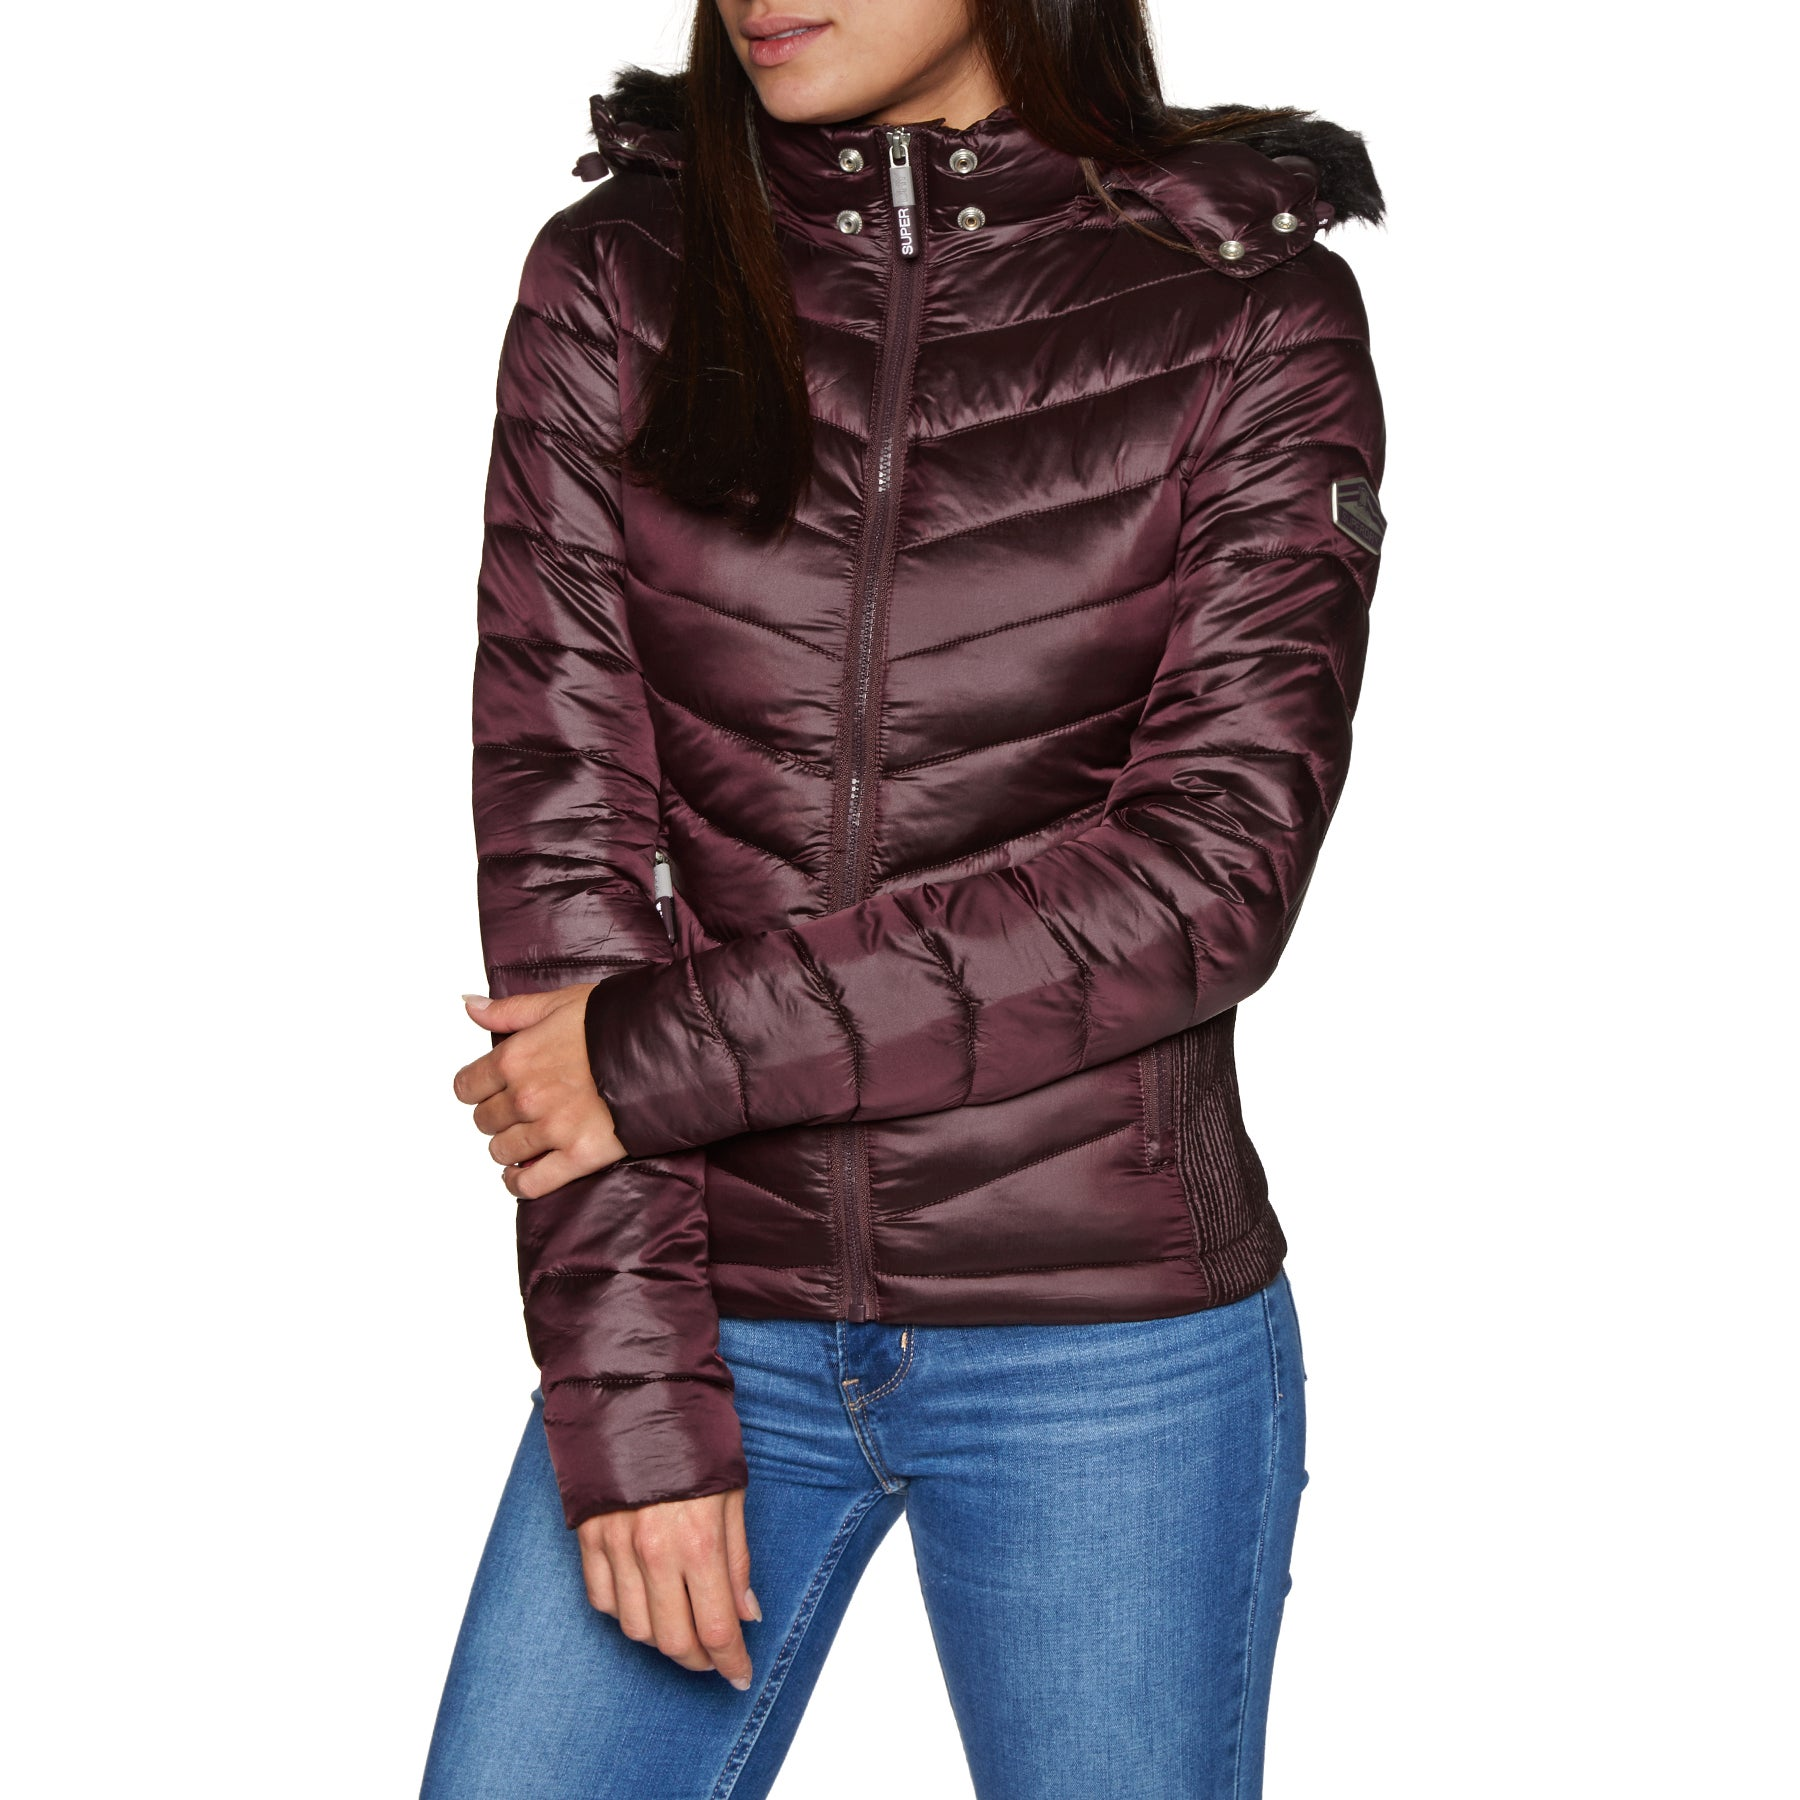 e70f39e5425c Superdry Hooded Luxe Chevron Fuji Womens Jacket available from Surfdome